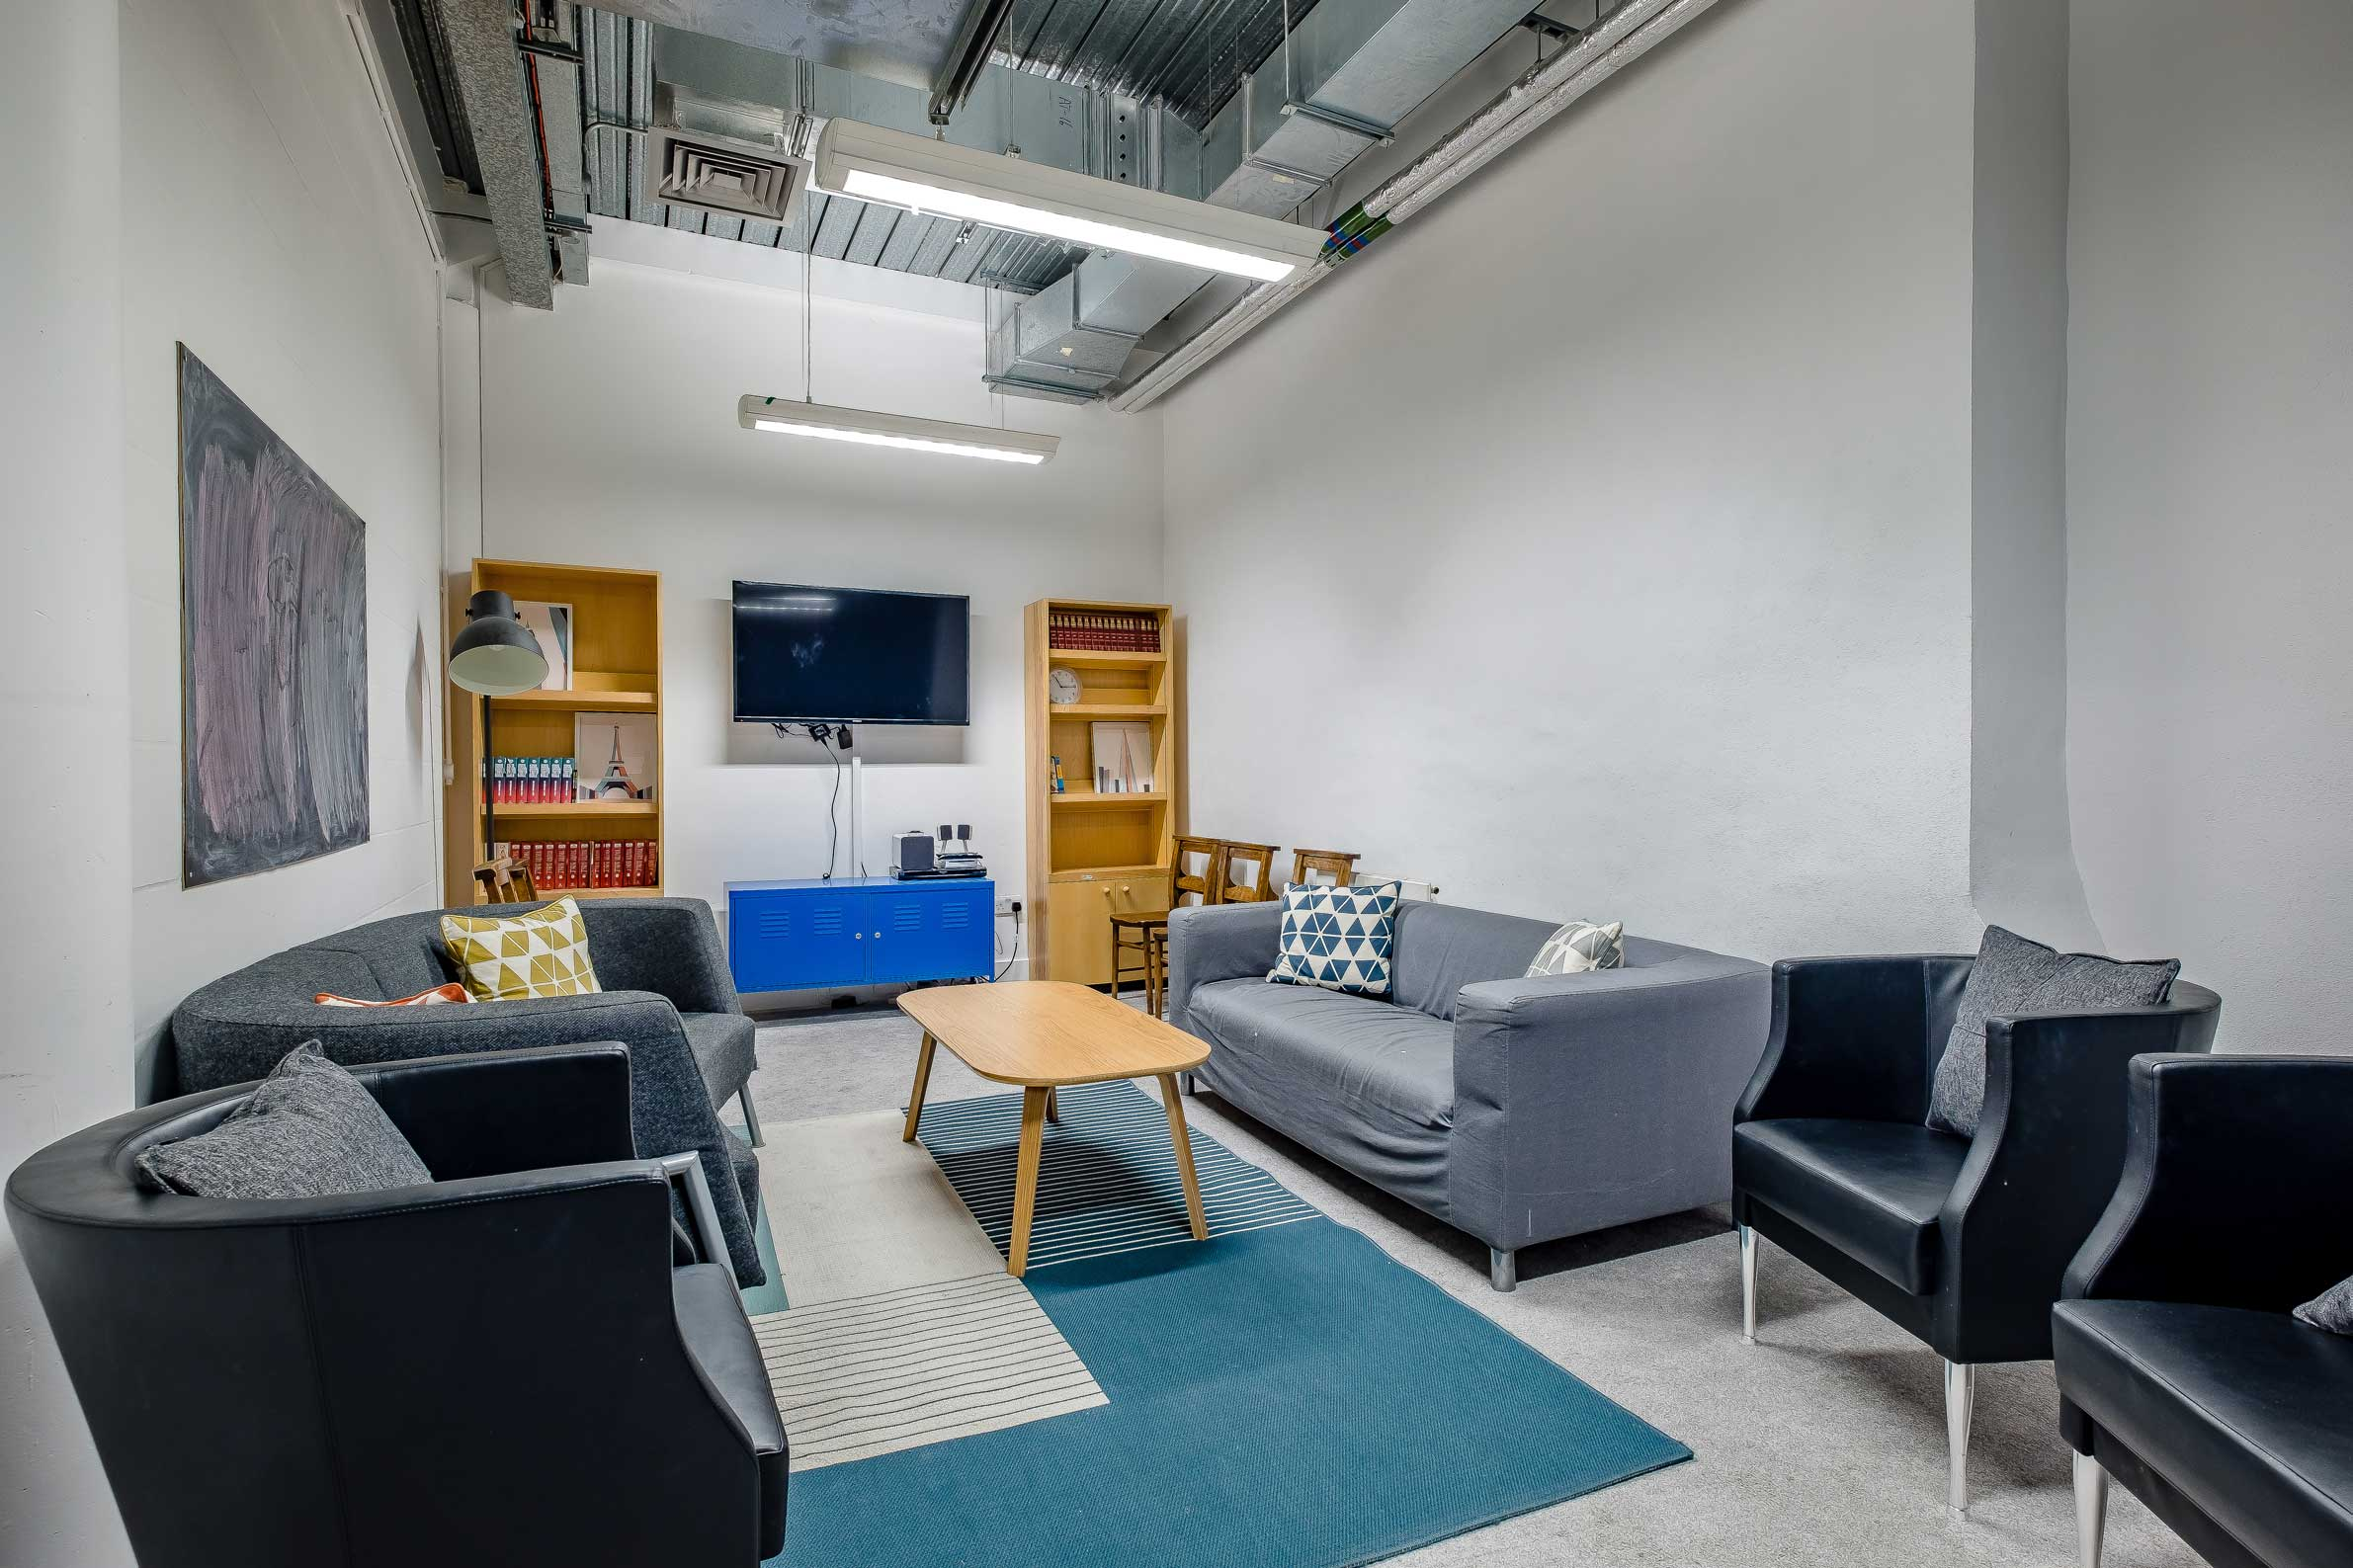 Meeting Room 2 with sofas, arm chairs, bookshelves and tv